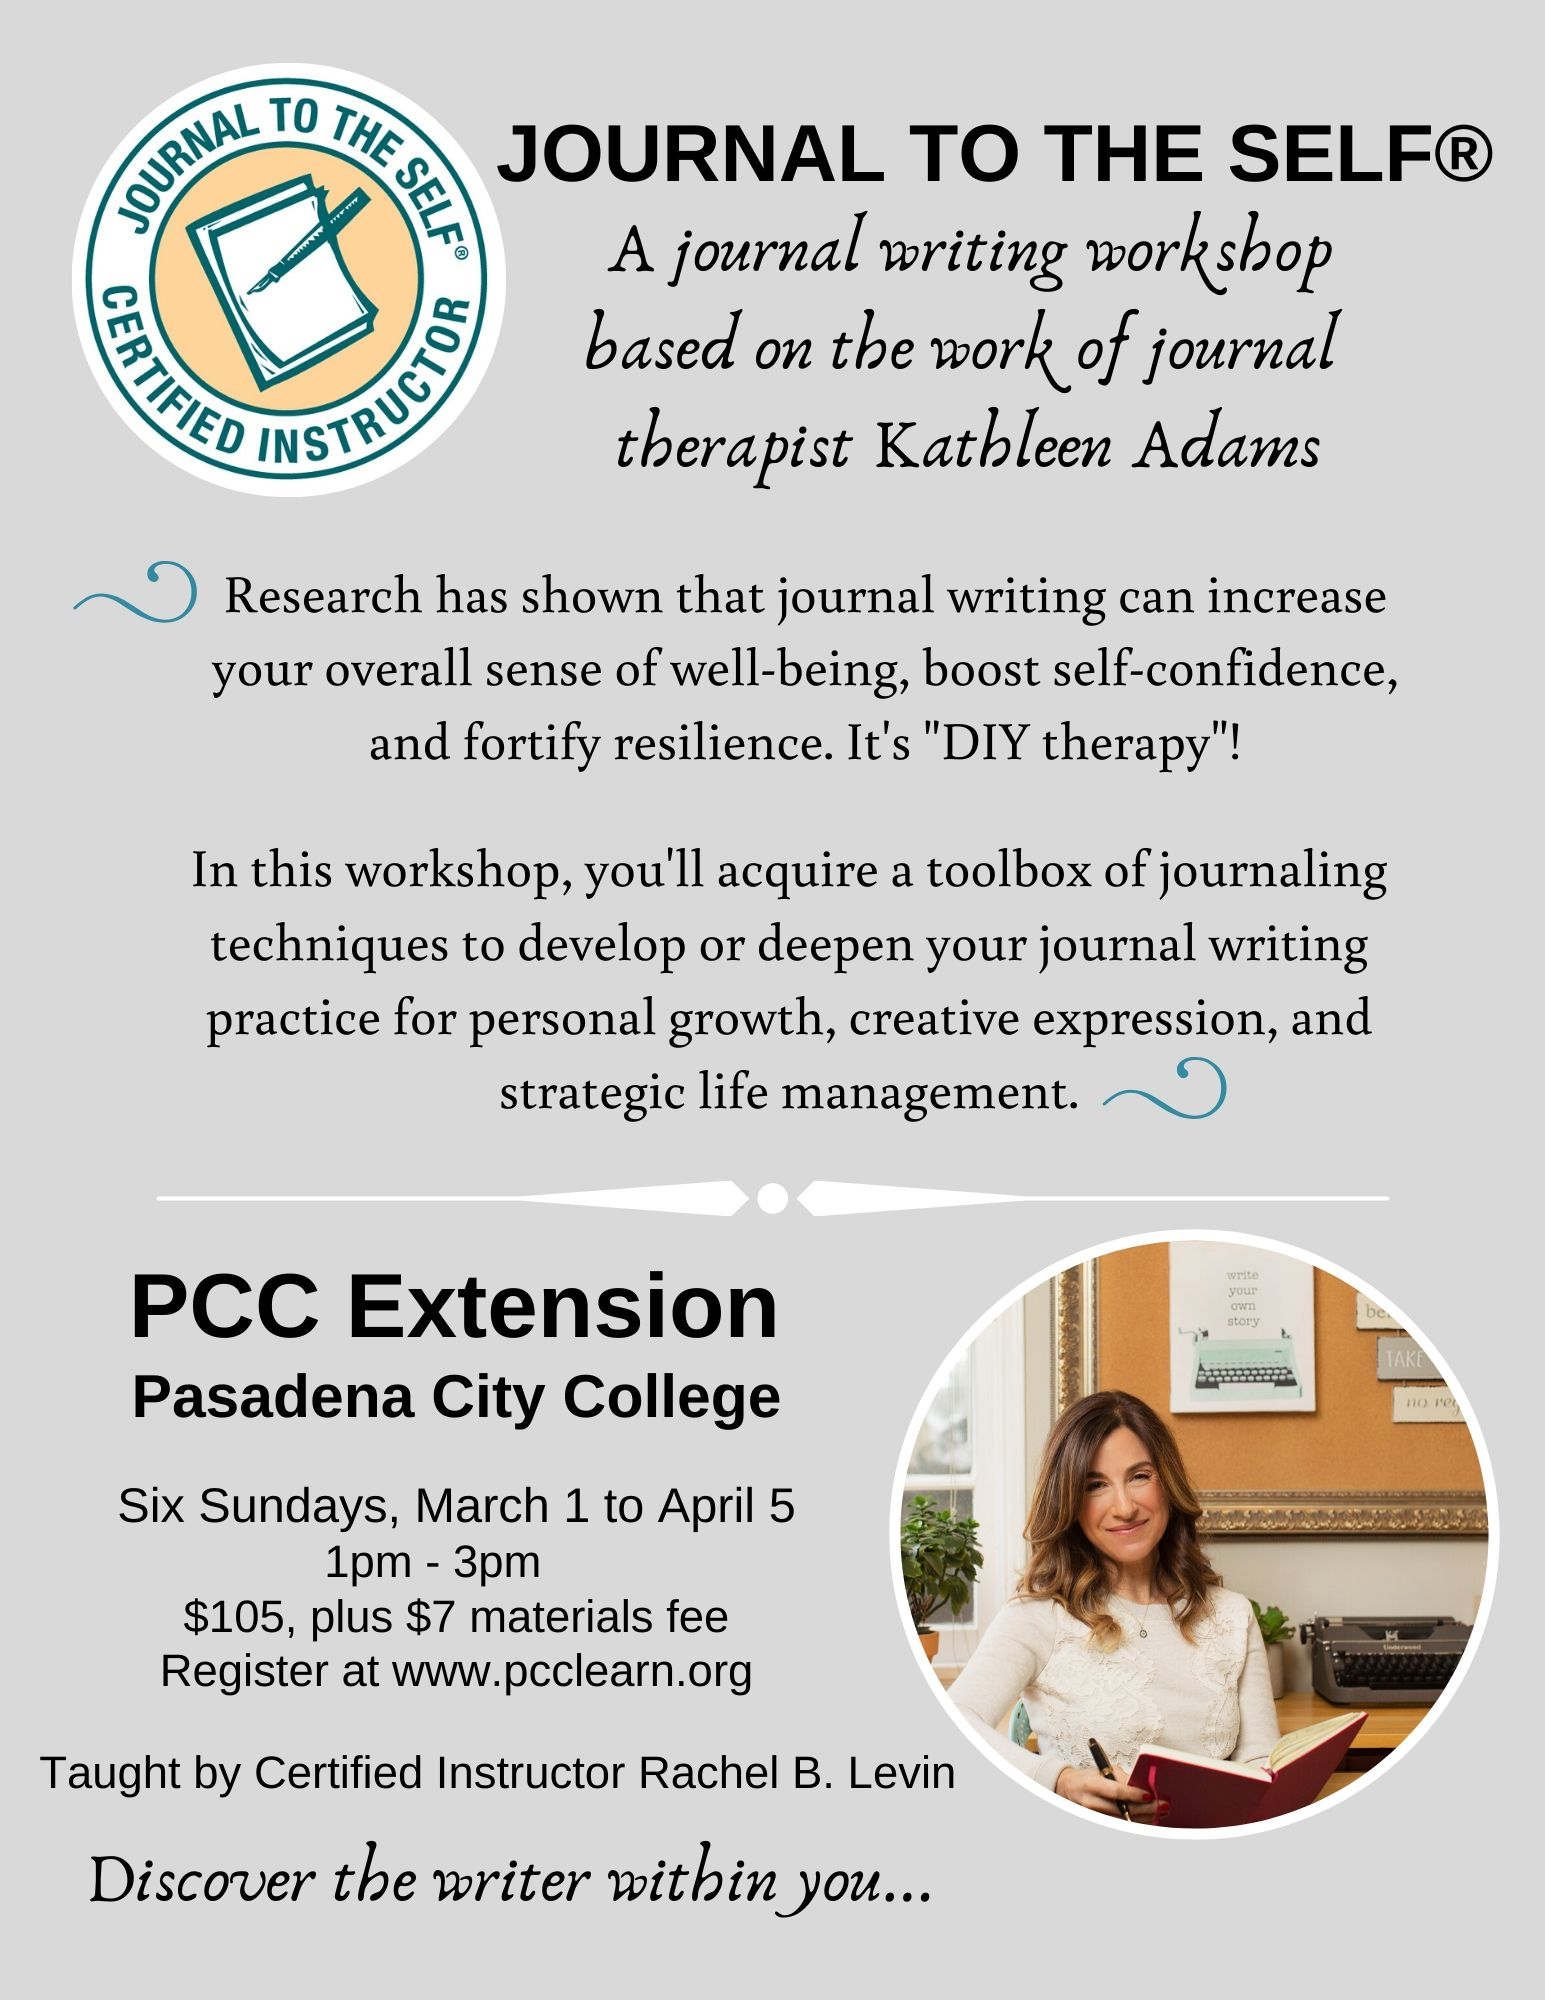 Journal to the Self at PCC Extension